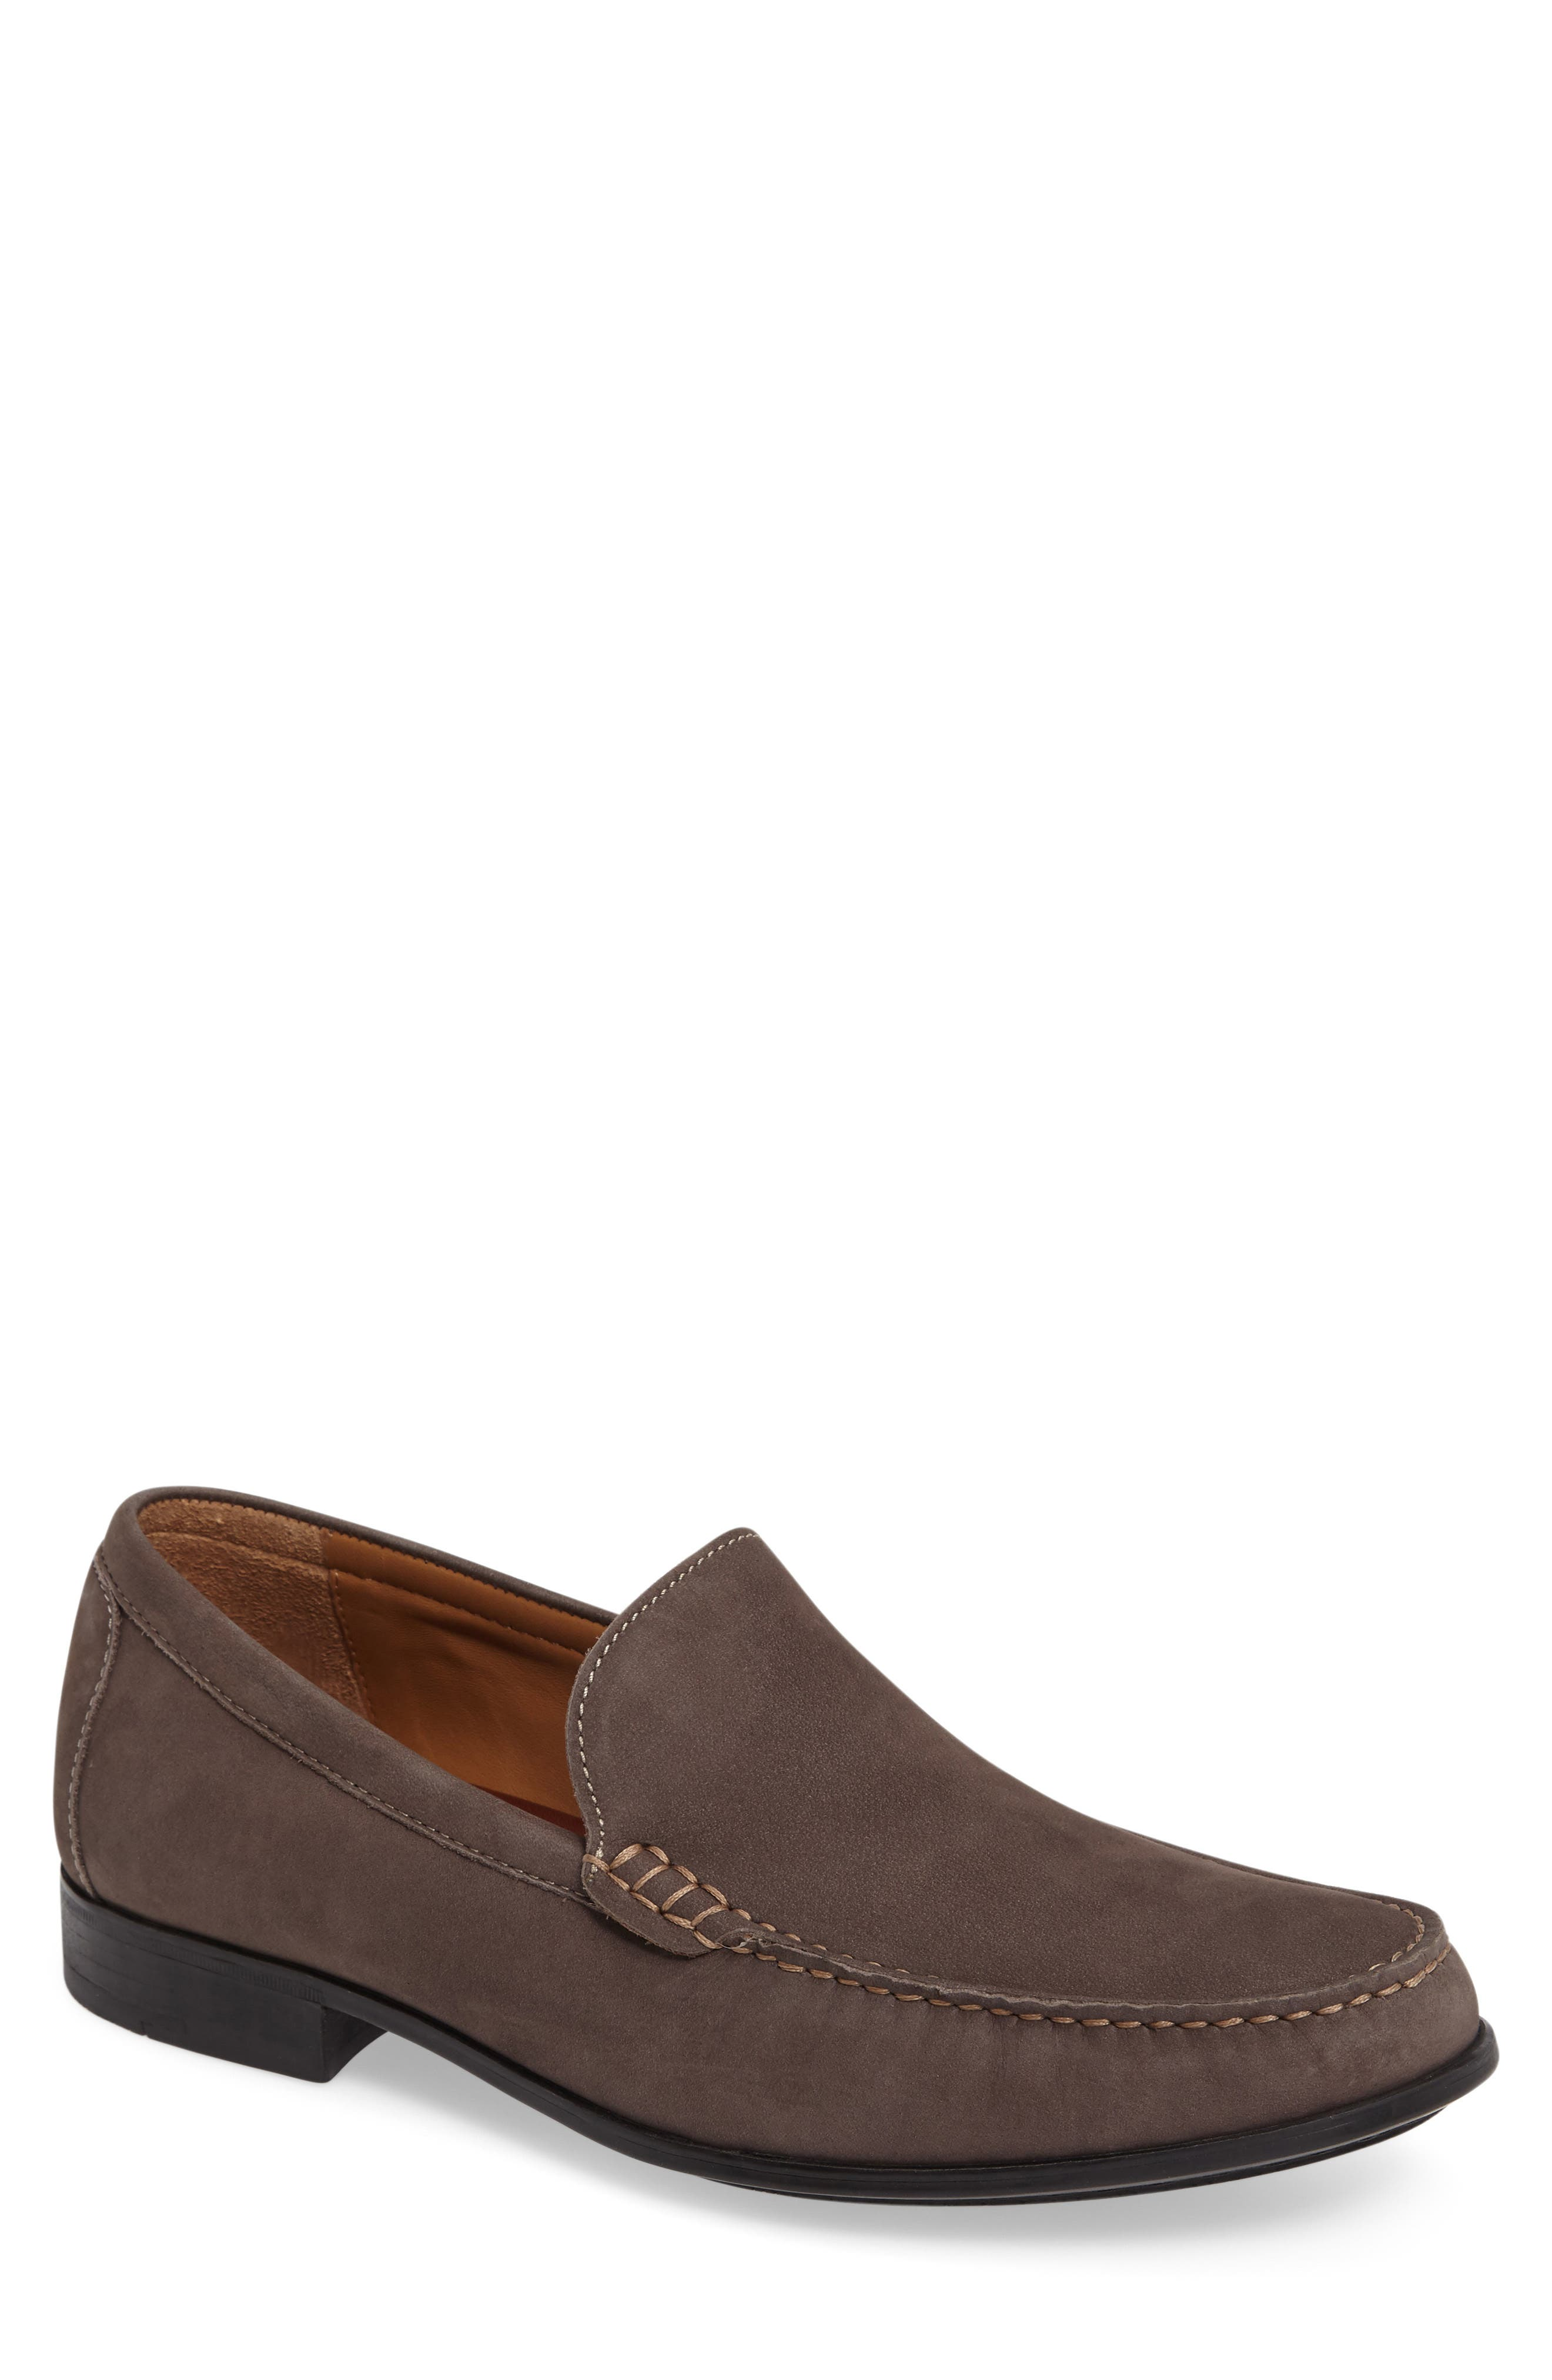 Cresswell Venetian Loafer,                             Main thumbnail 1, color,                             020